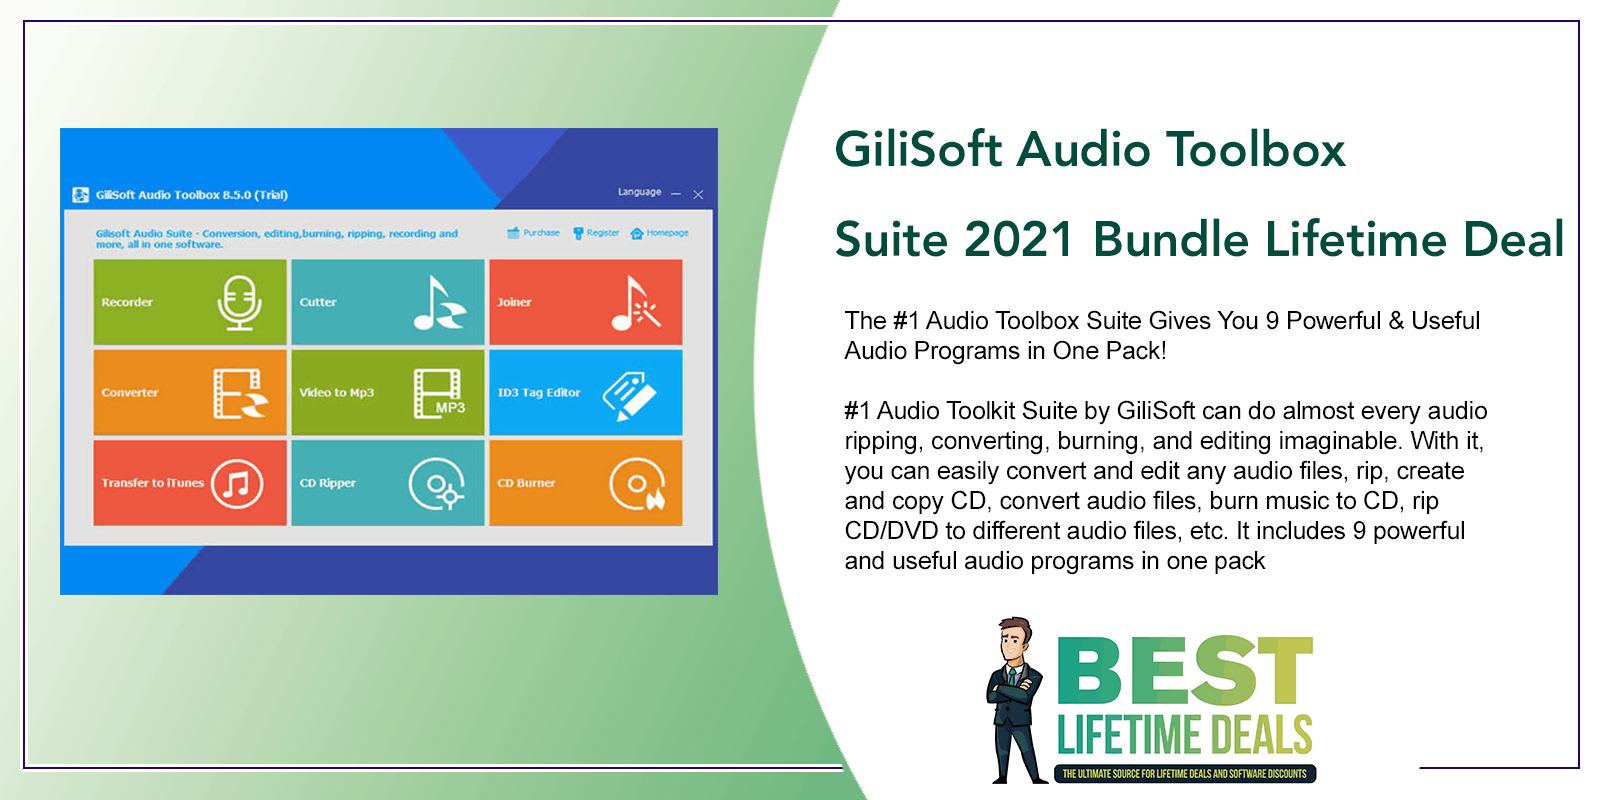 GiliSoft Audio Toolbox Suite Featured Image